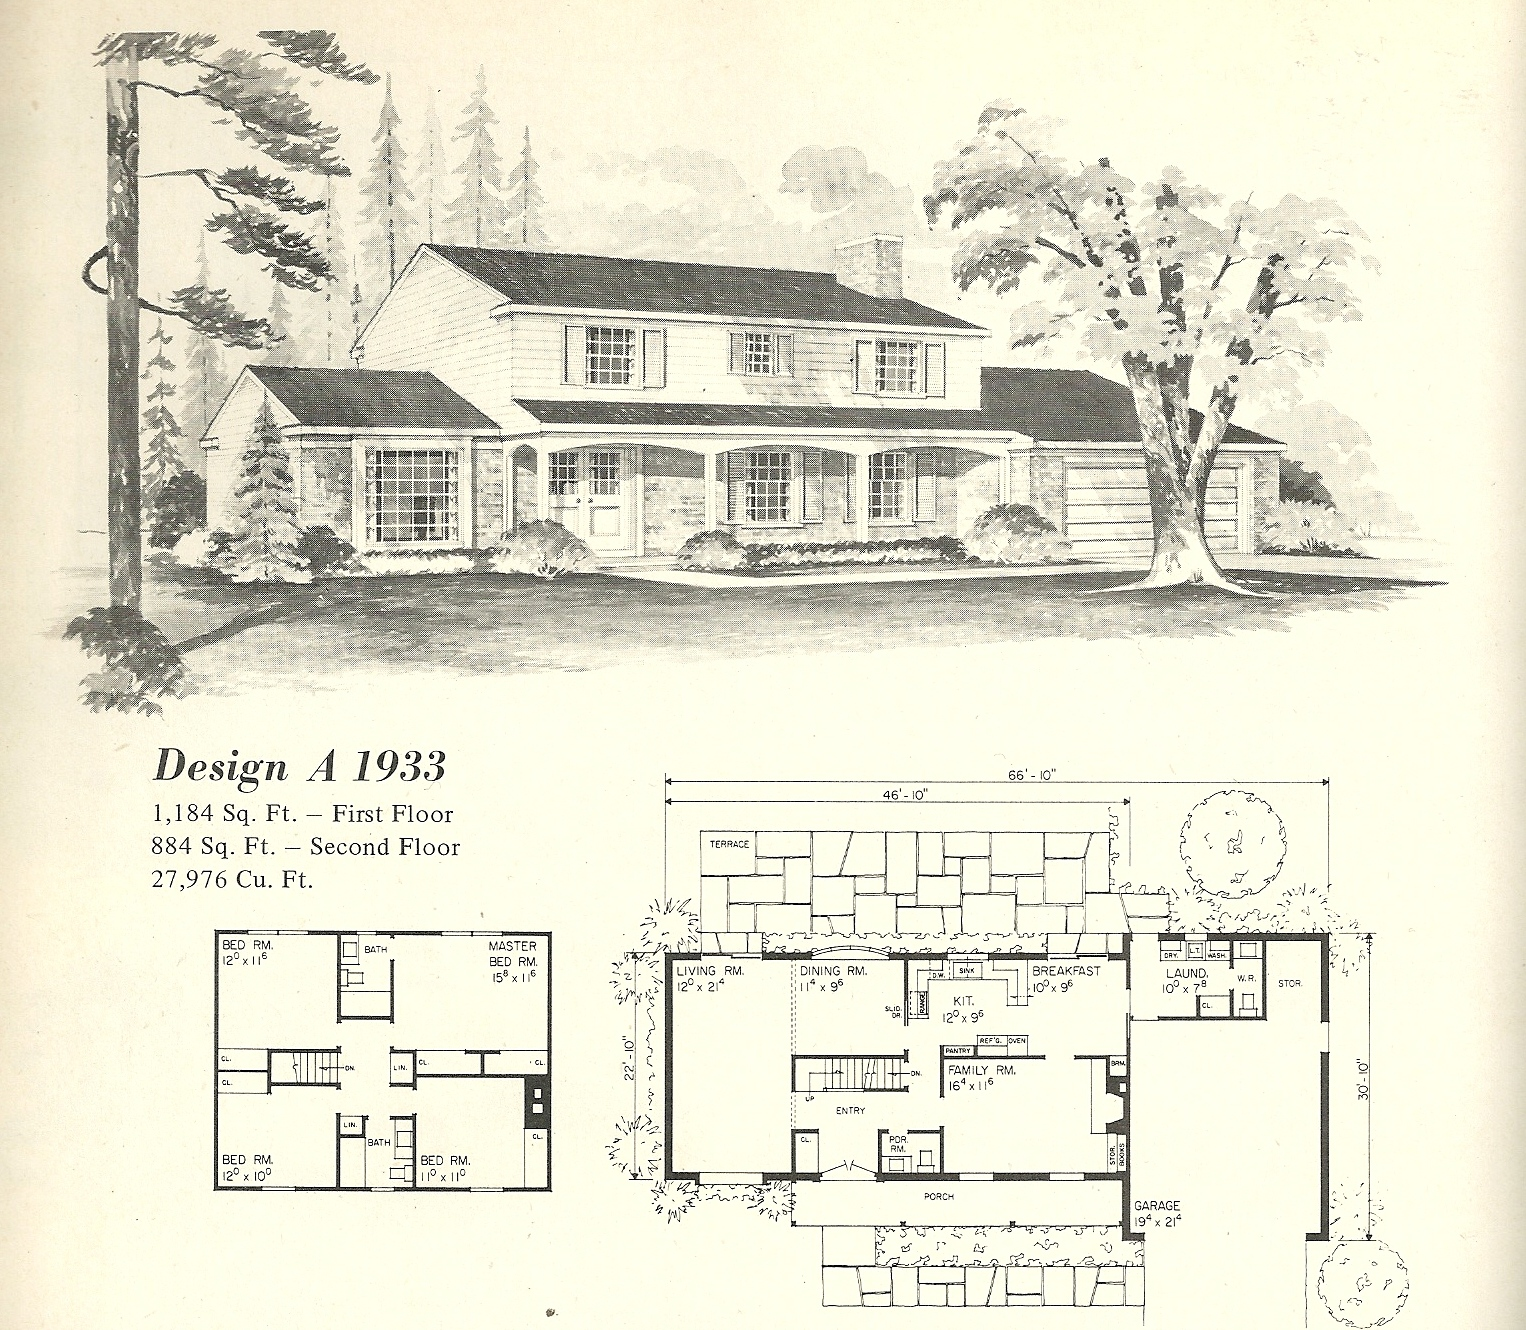 Vintage house plans 1933 antique alter ego for Farmhouse plans